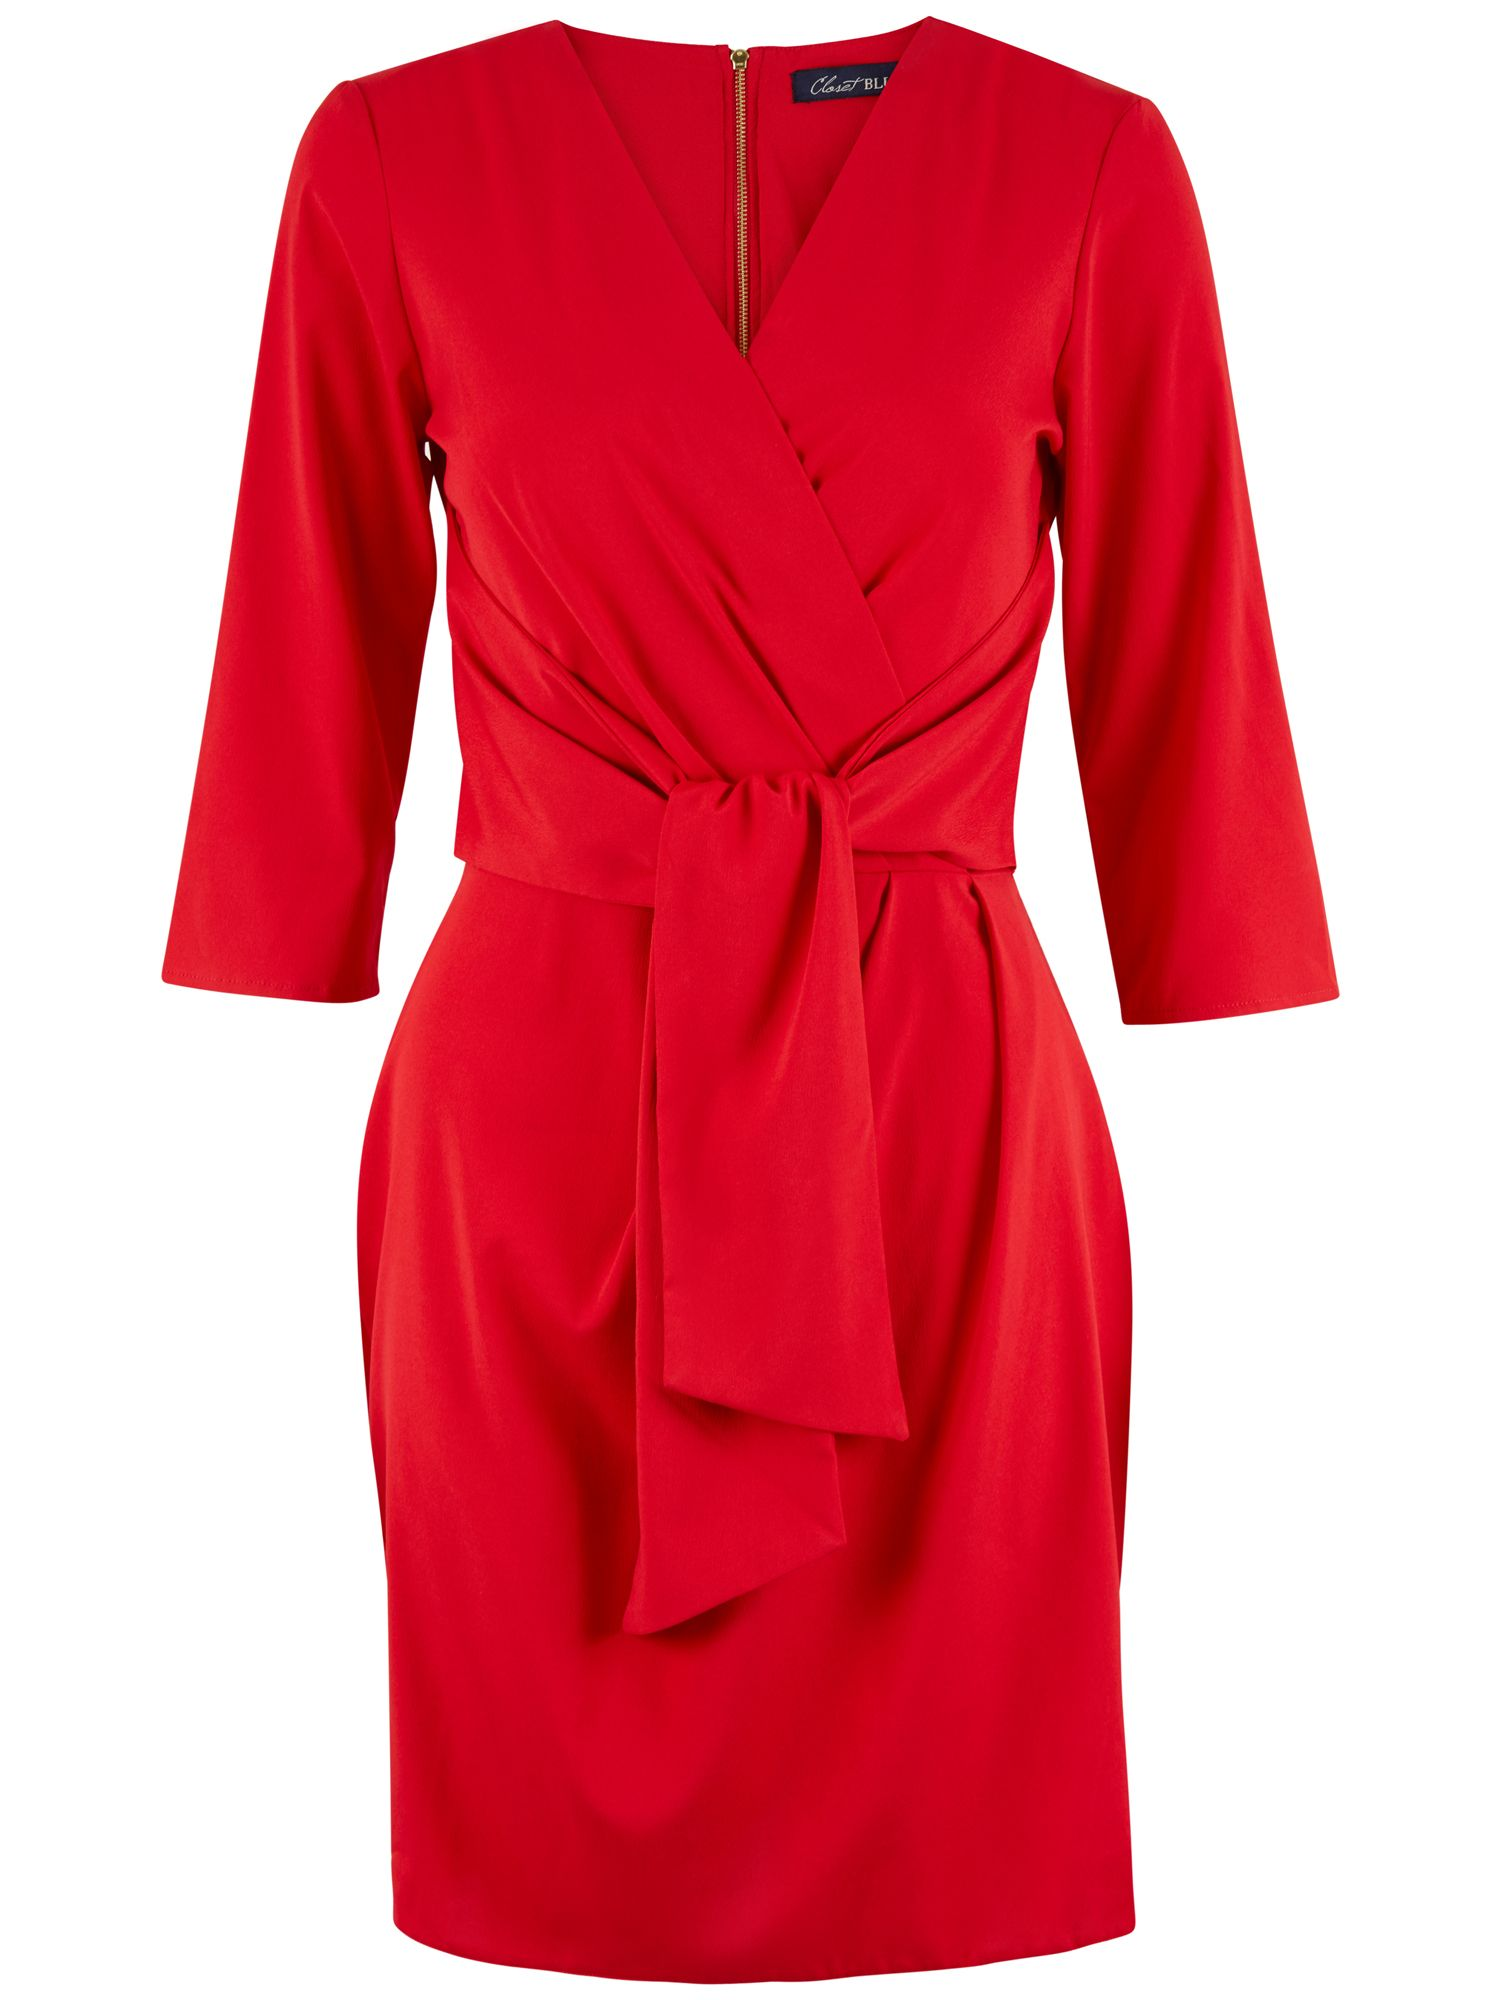 Closet 3/4 Sleeve Wrap Dress, Red